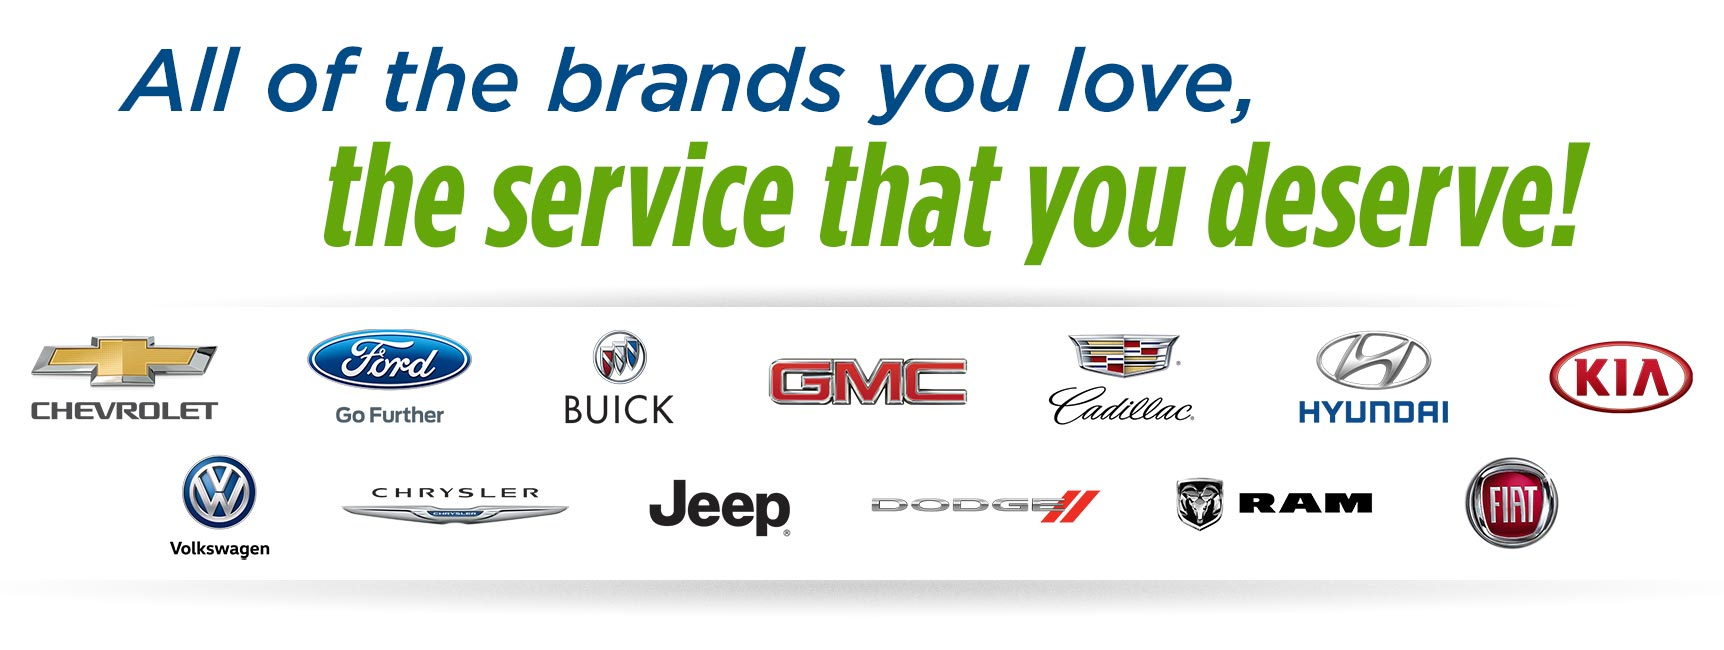 The brands you love, the service you deserve!